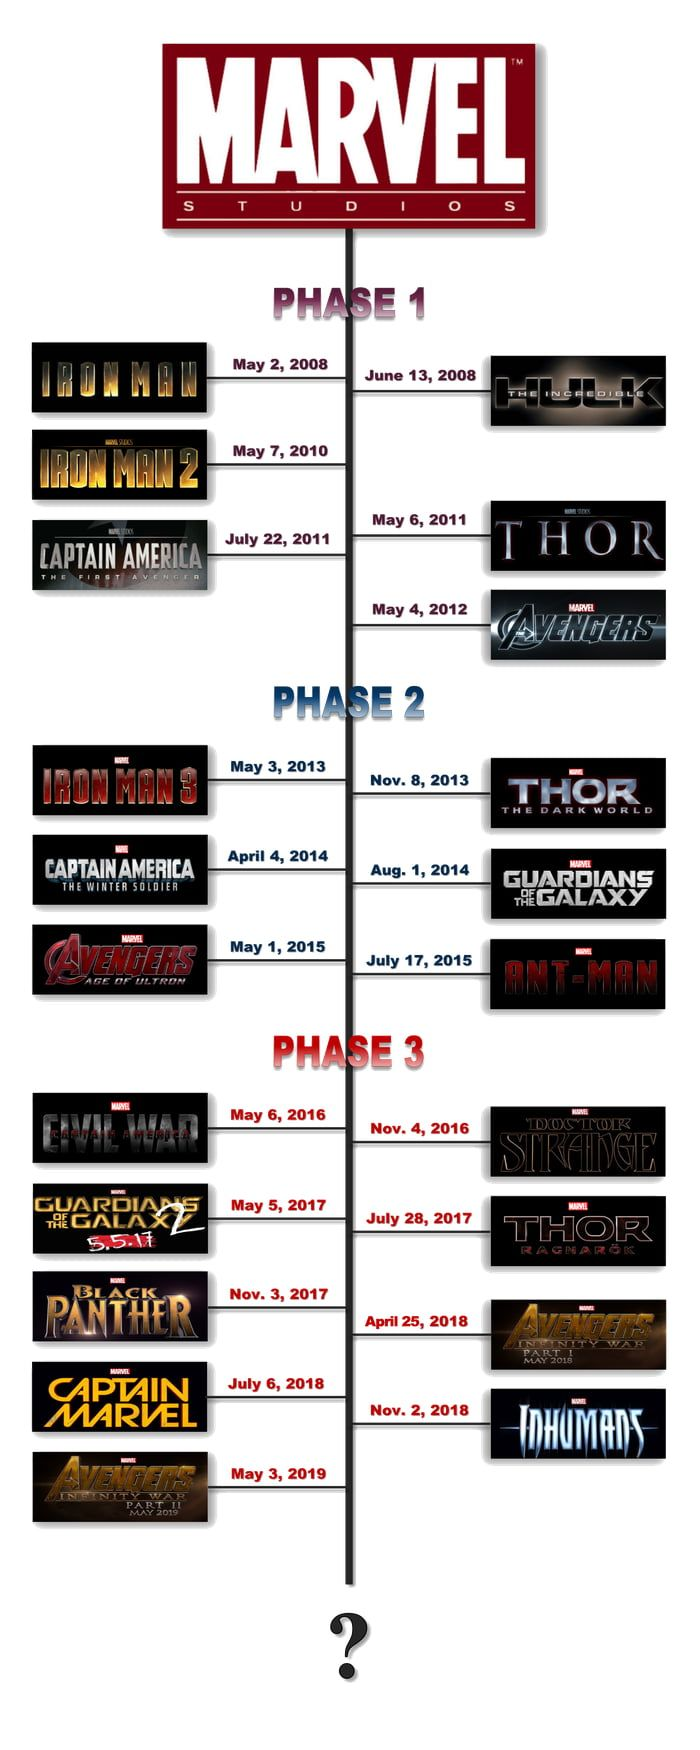 Watch Marvel Cinematic Universe Movies In Chronological Order Marvel Cinematic Universe Movies Marvel Movie Releases Ultimate Marvel